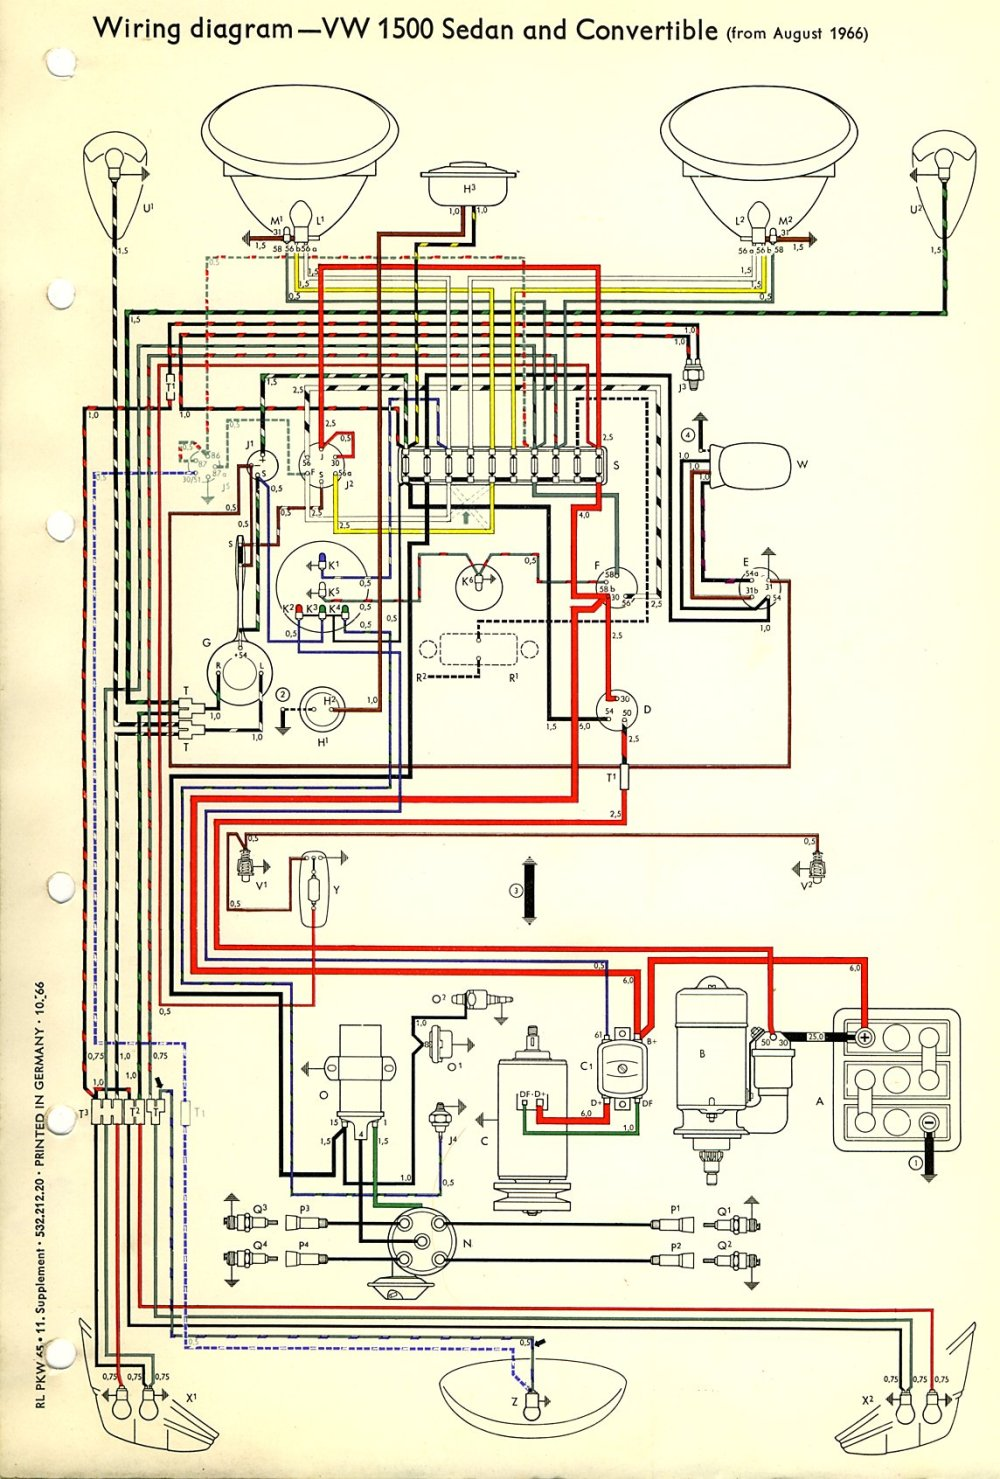 medium resolution of 1967 beetle wiring diagram thegoldenbug com vw polo fuse box location vw beetle fuse diagram